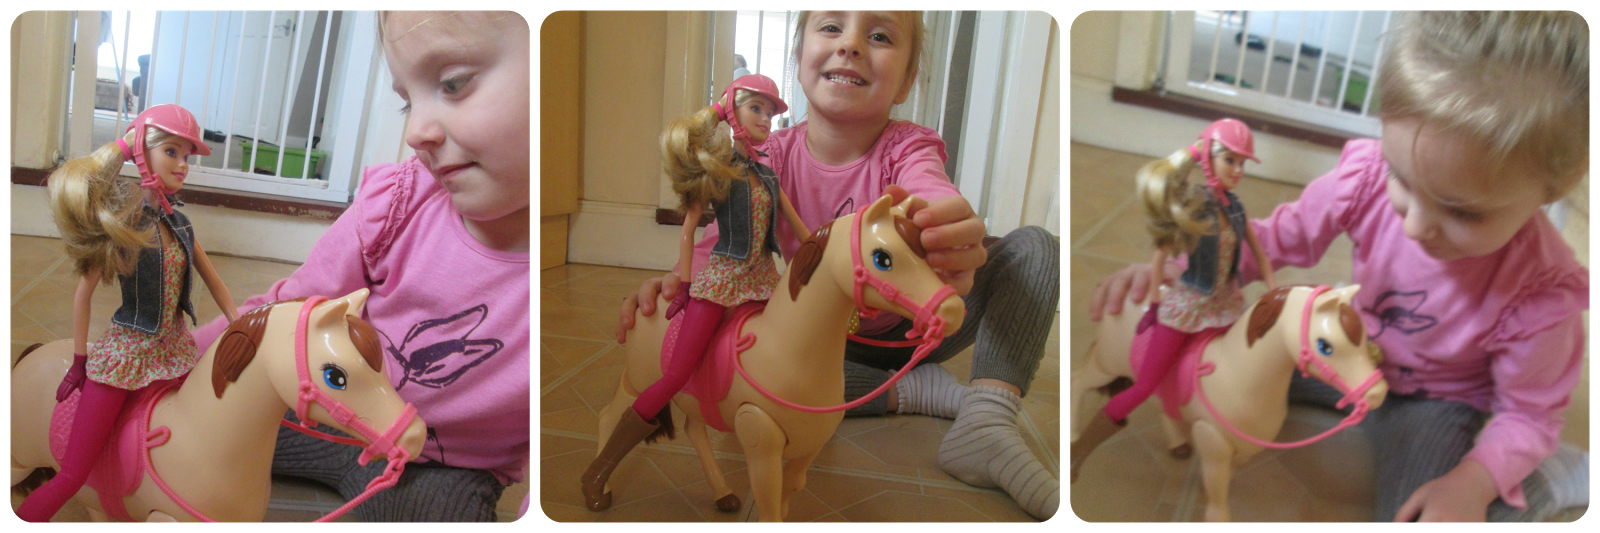 Lily and Barbie Saddle 'n Ride